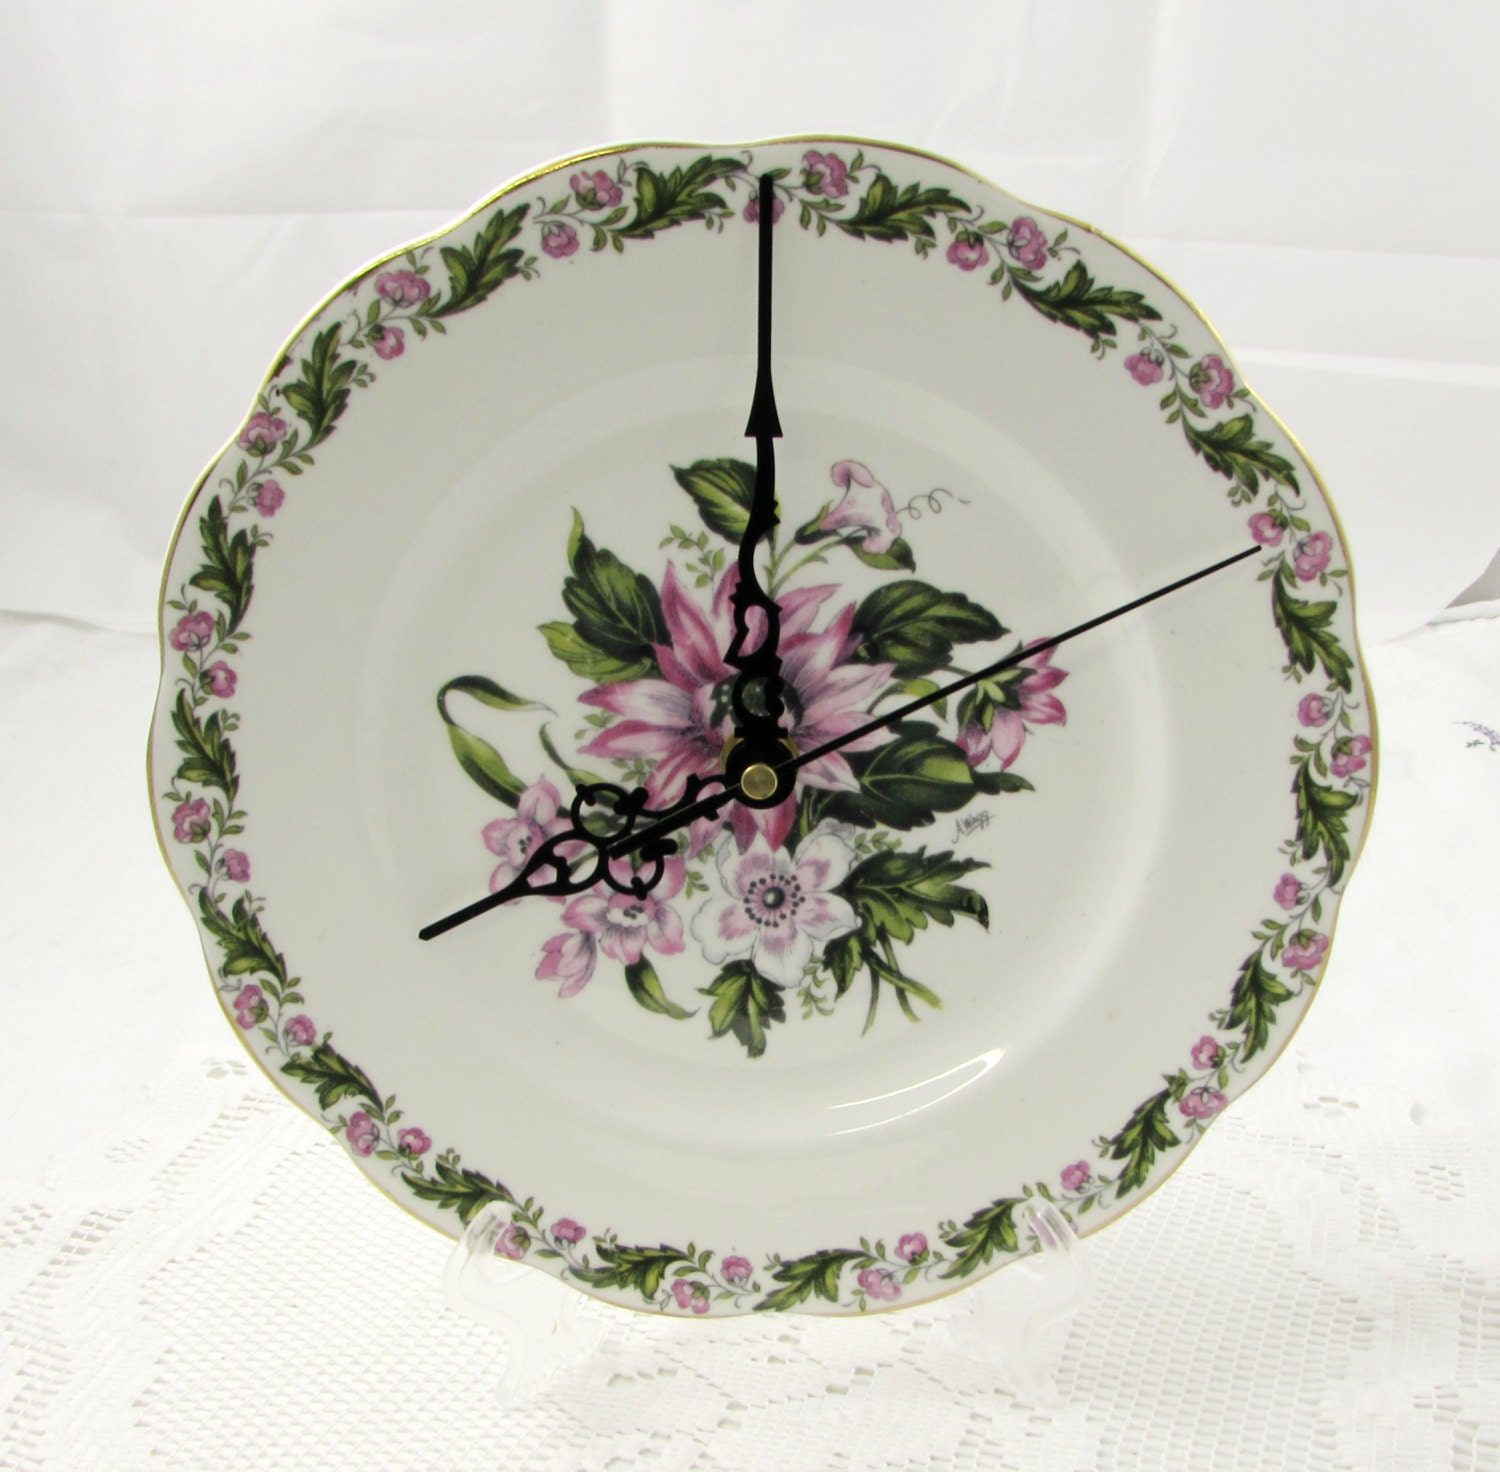 Decorative Wall Plates Nz : Wall clock made from vintage bone china plate